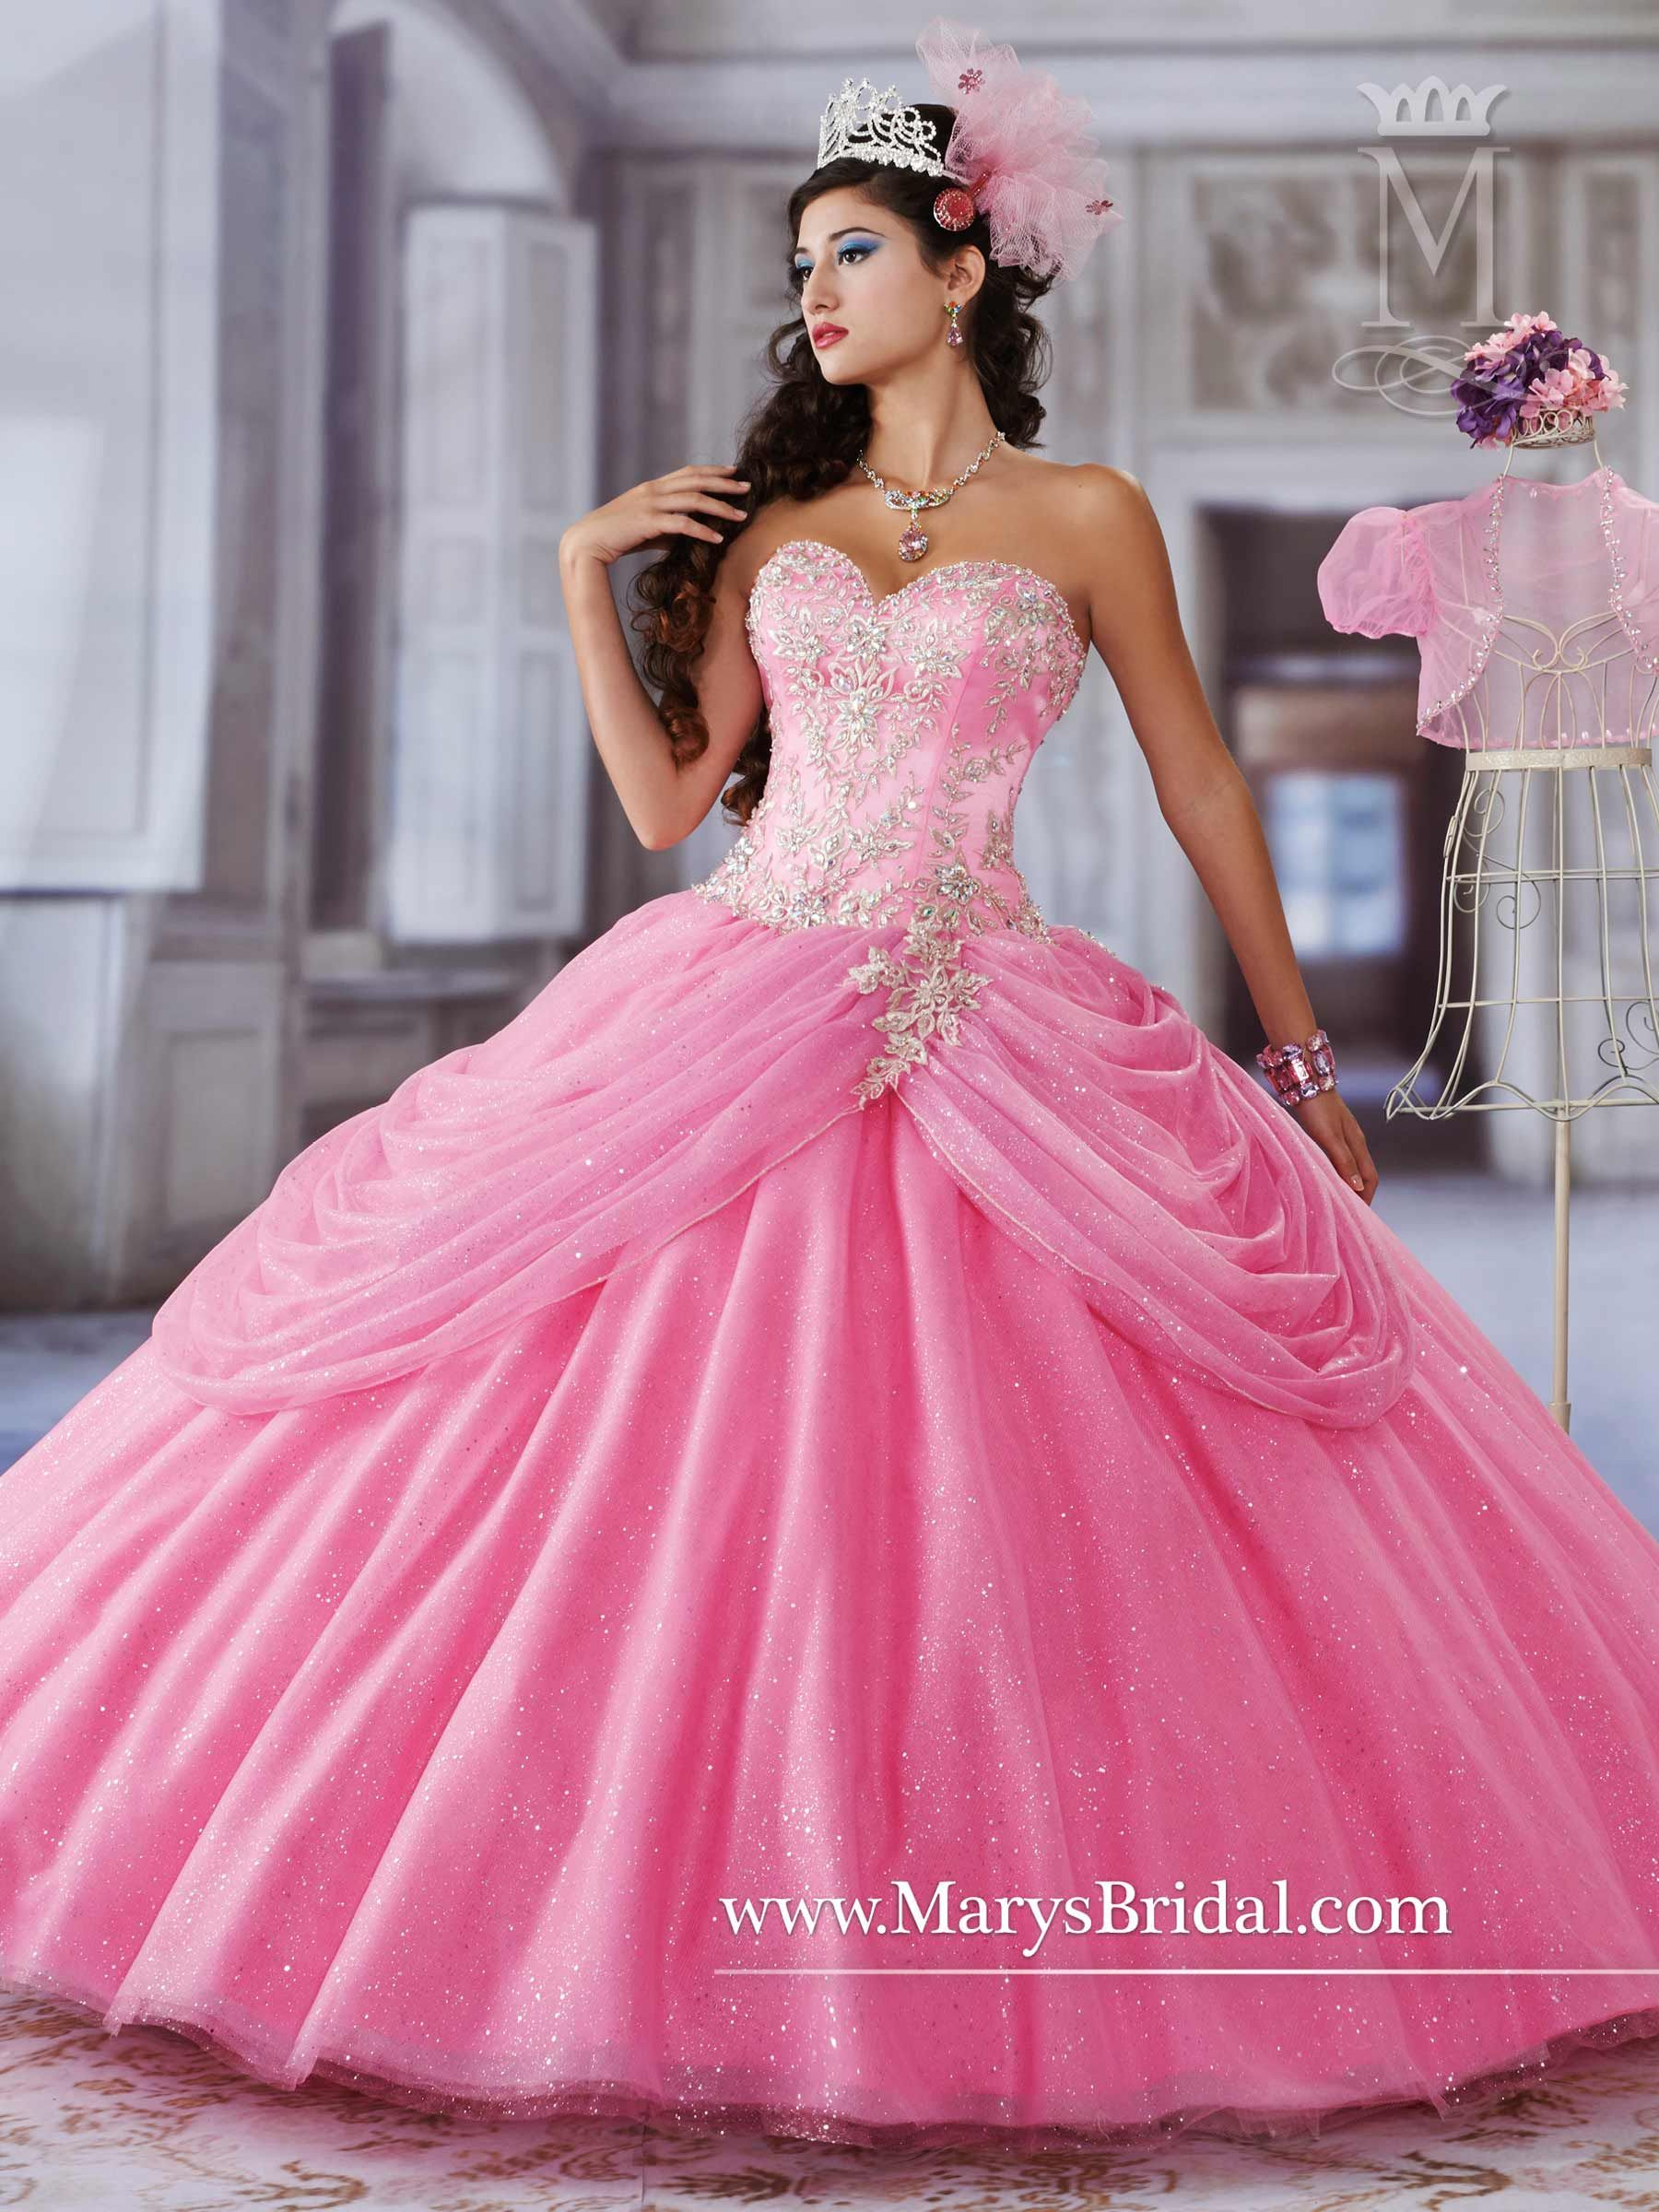 8b950a0c12283 Mary's Princess collection of Quinceanera dresses | Quinceanera ...